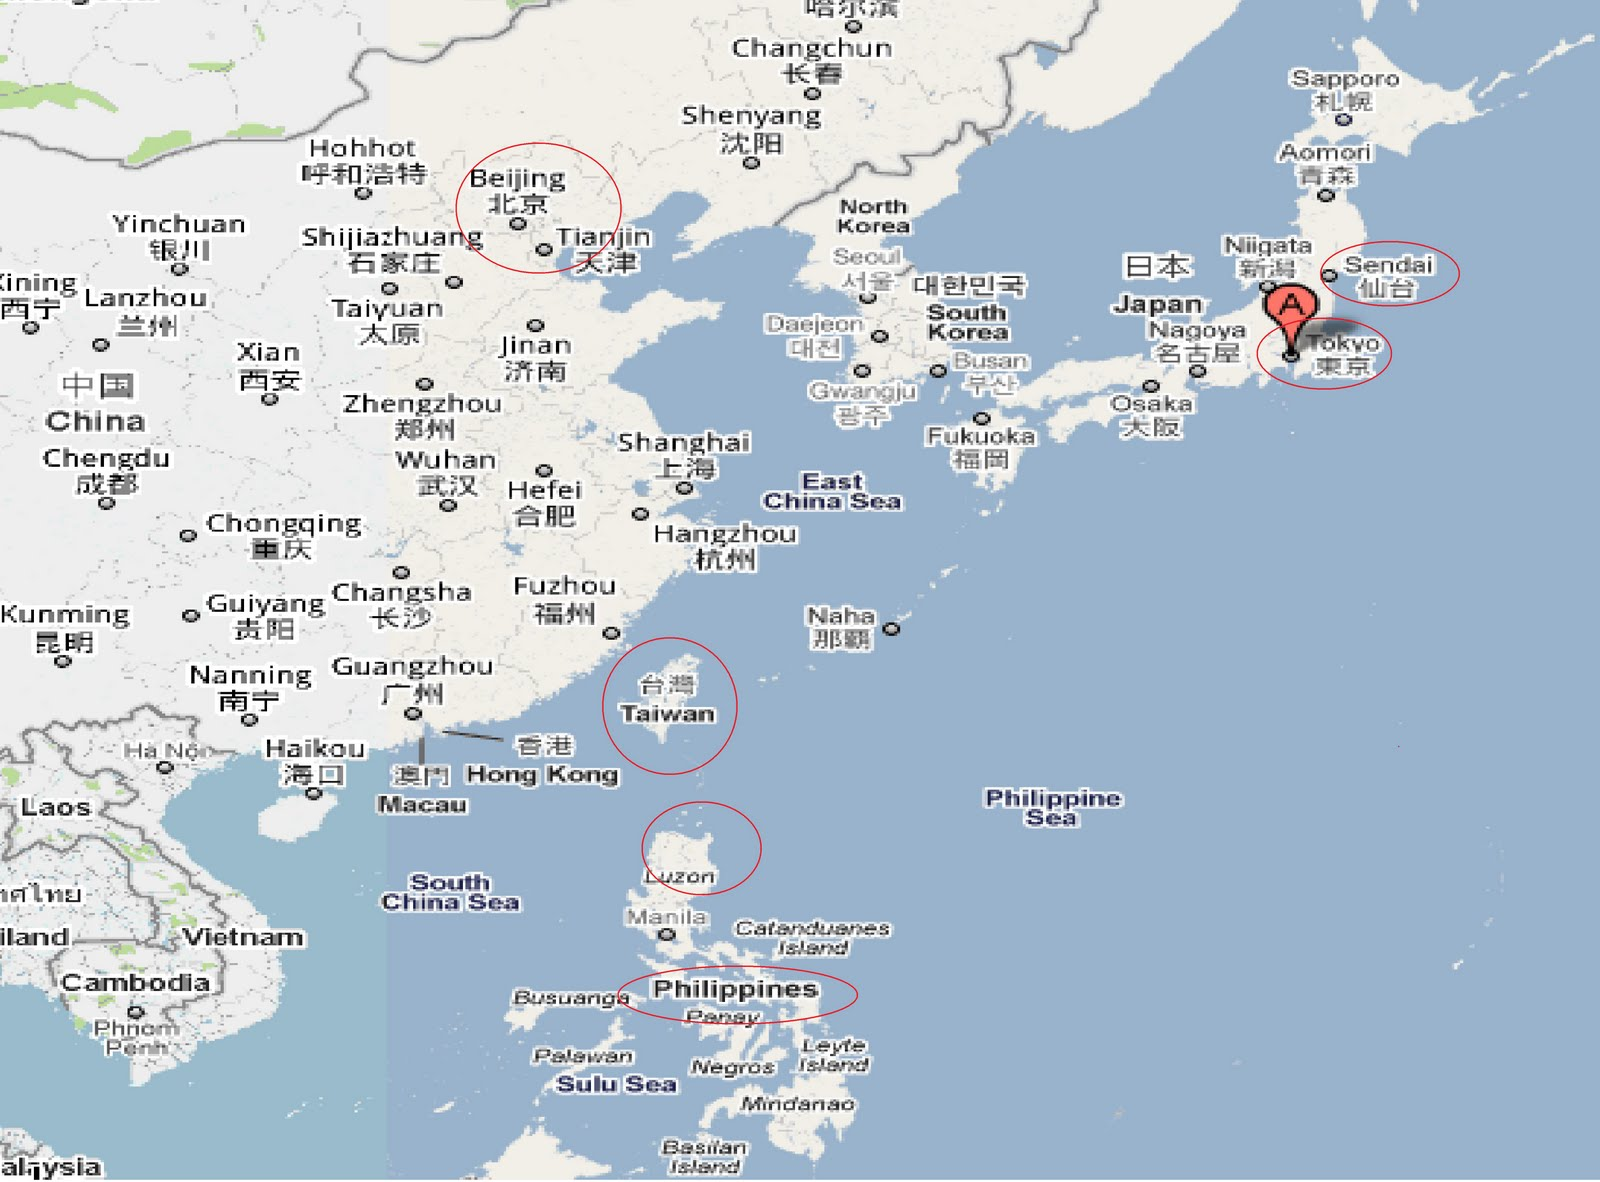 frances relationship with neighboring countries of japan